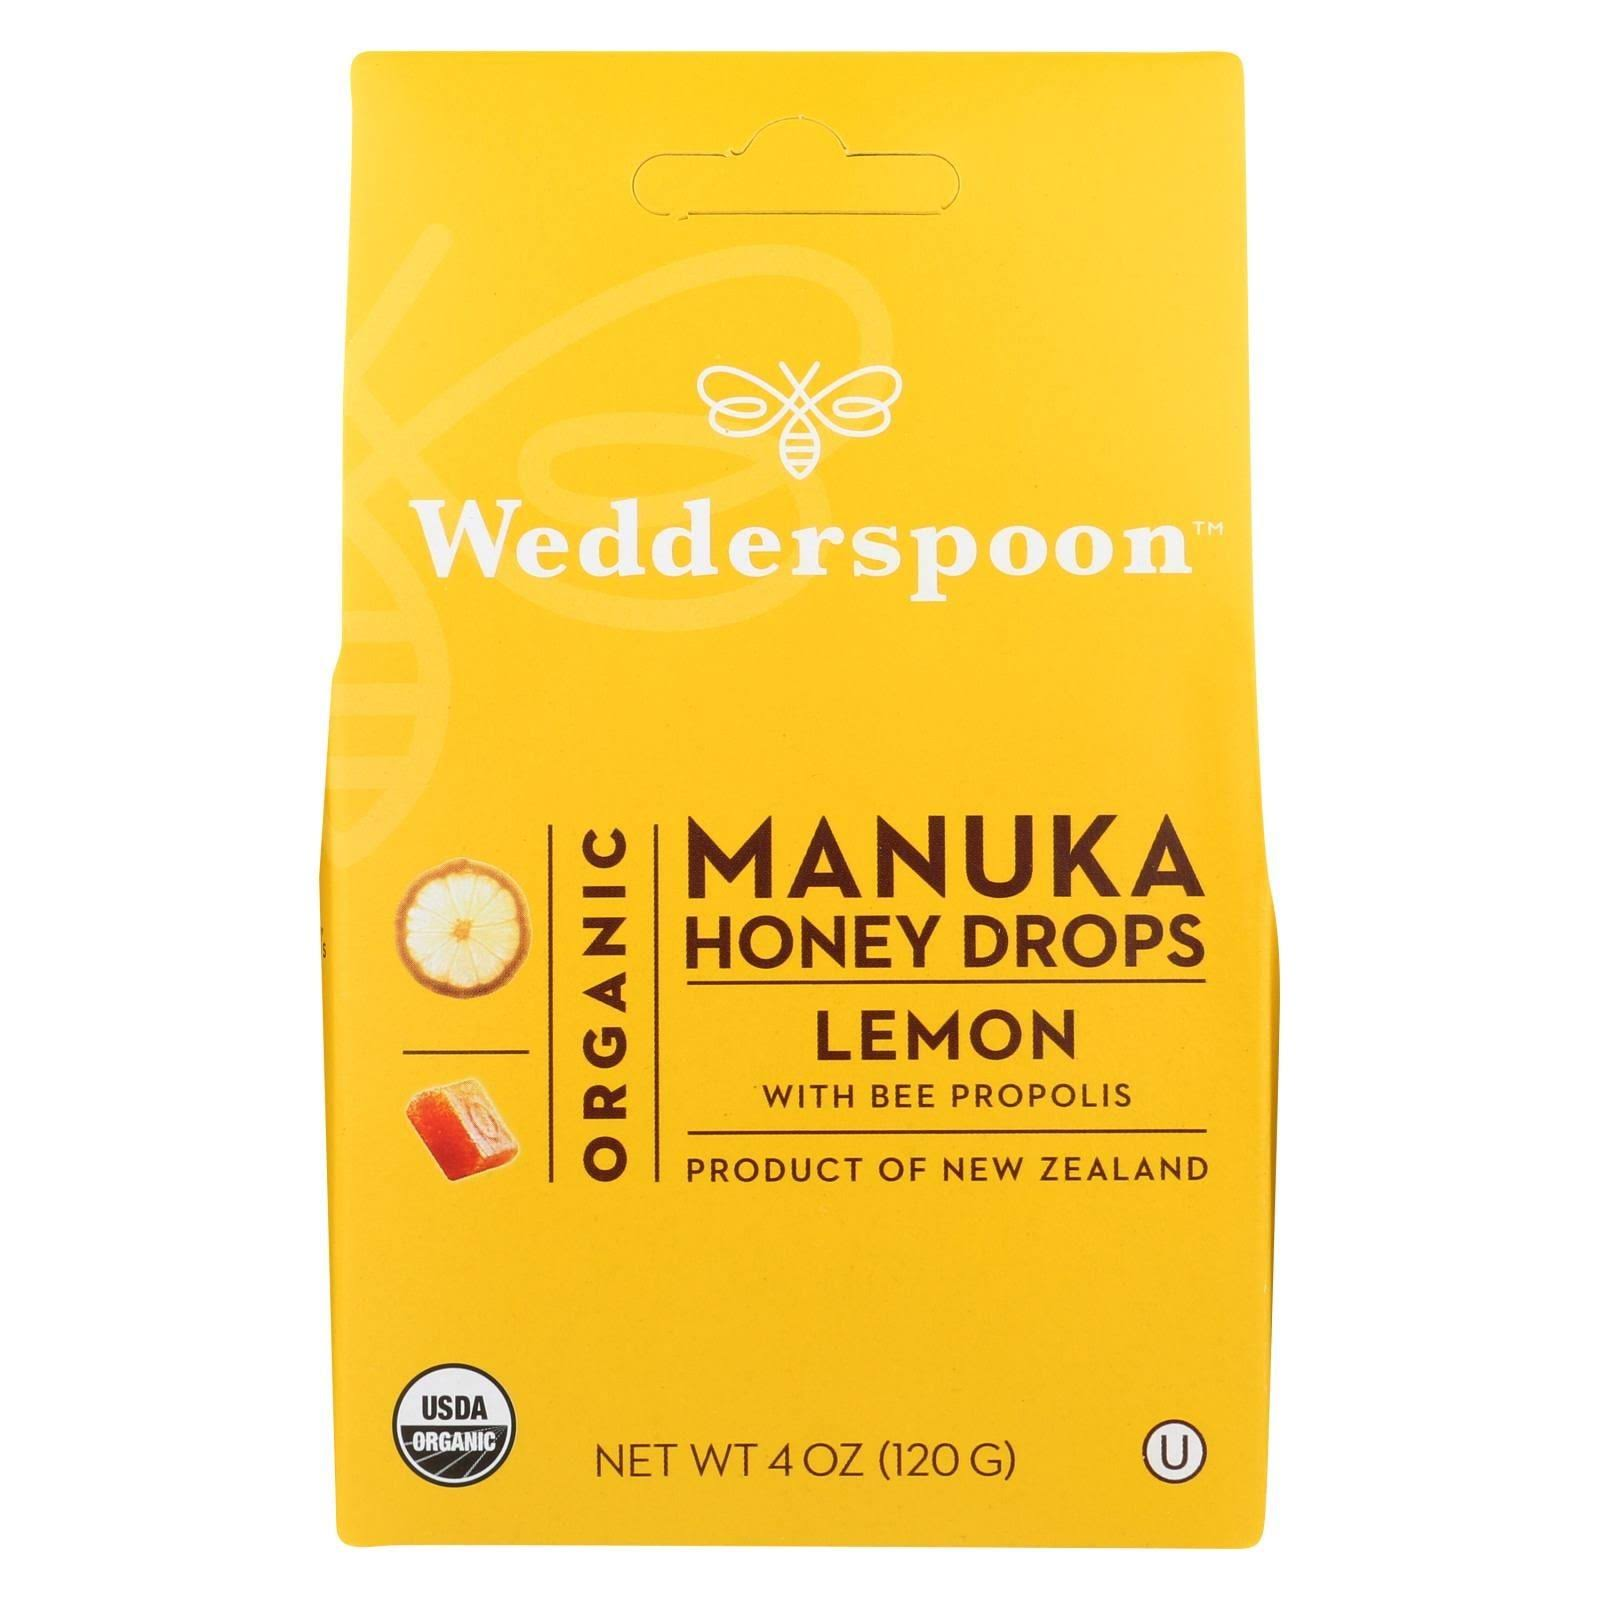 Wedderspoon Organic Manuka Honey Lozenges - Lemon with Bee Propolis